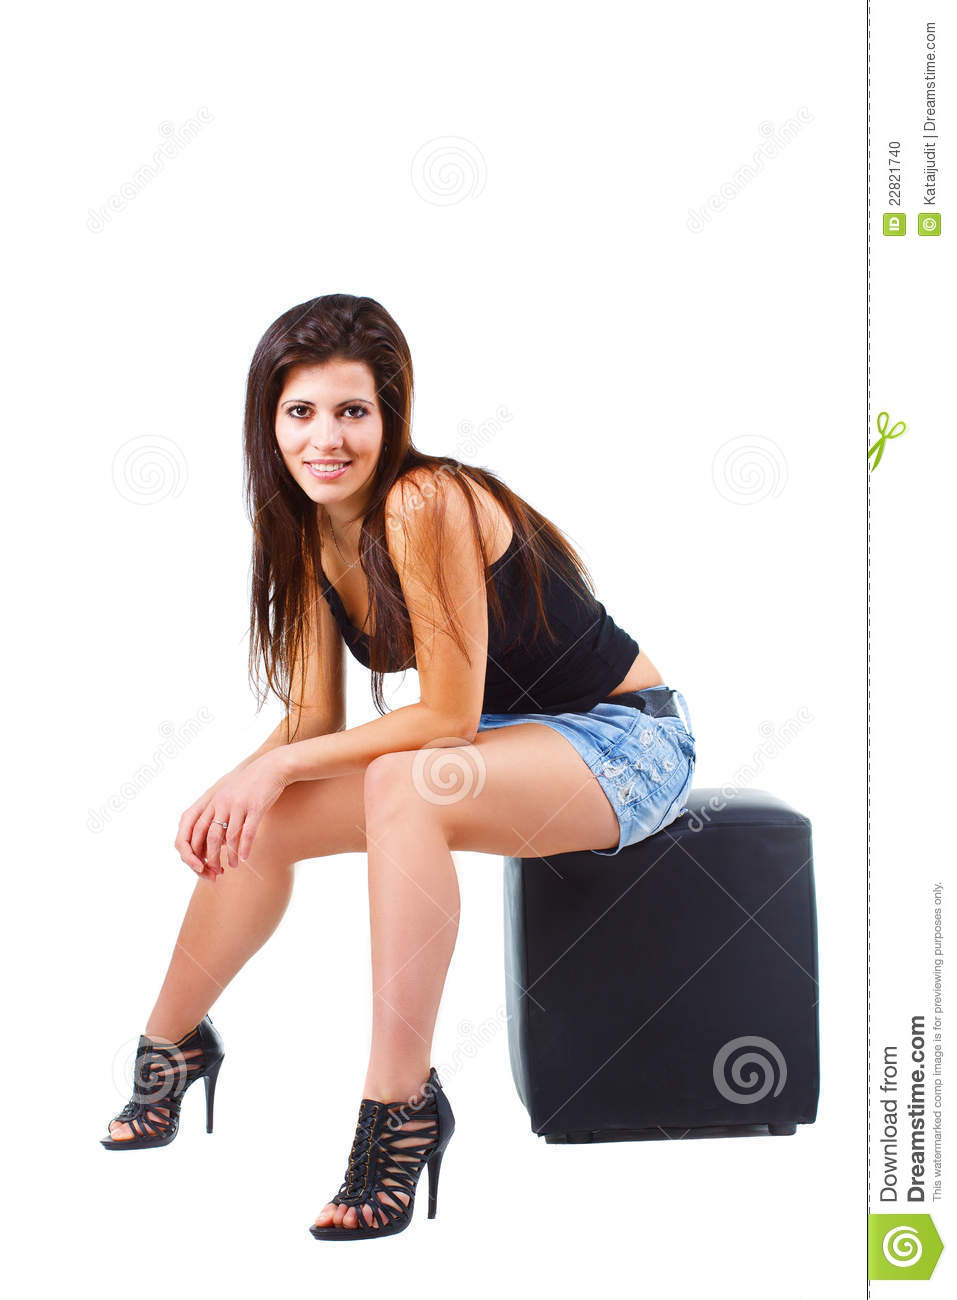 Innovative  Haired Cheerful Girl In A Short Skirt Sitting On A Chair And Gesturing